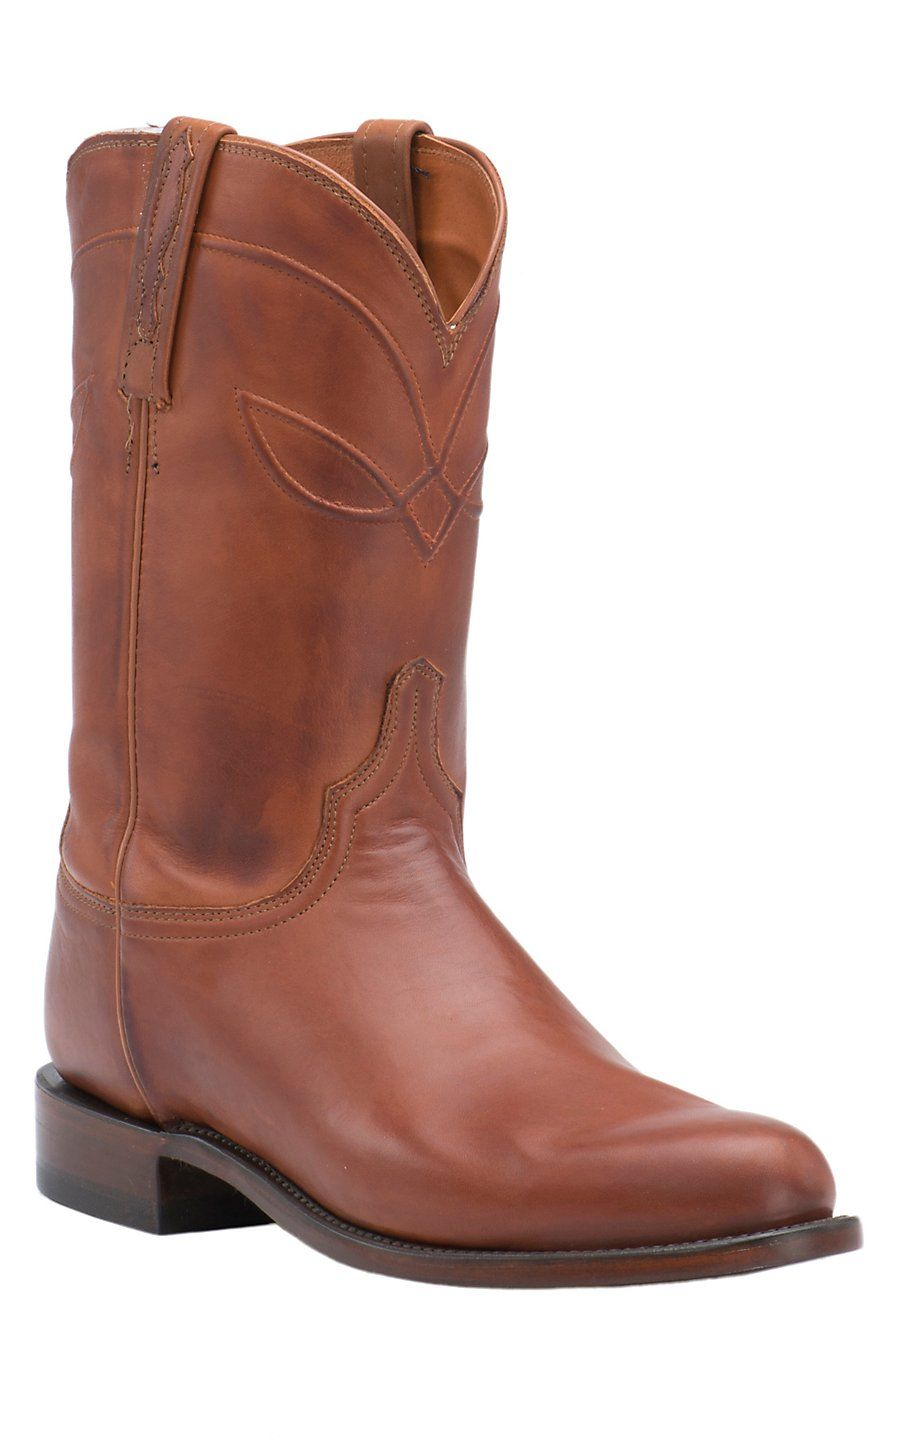 Lucchese 1883 Men S Cognac Burnished Ranch Hand Roper Boot